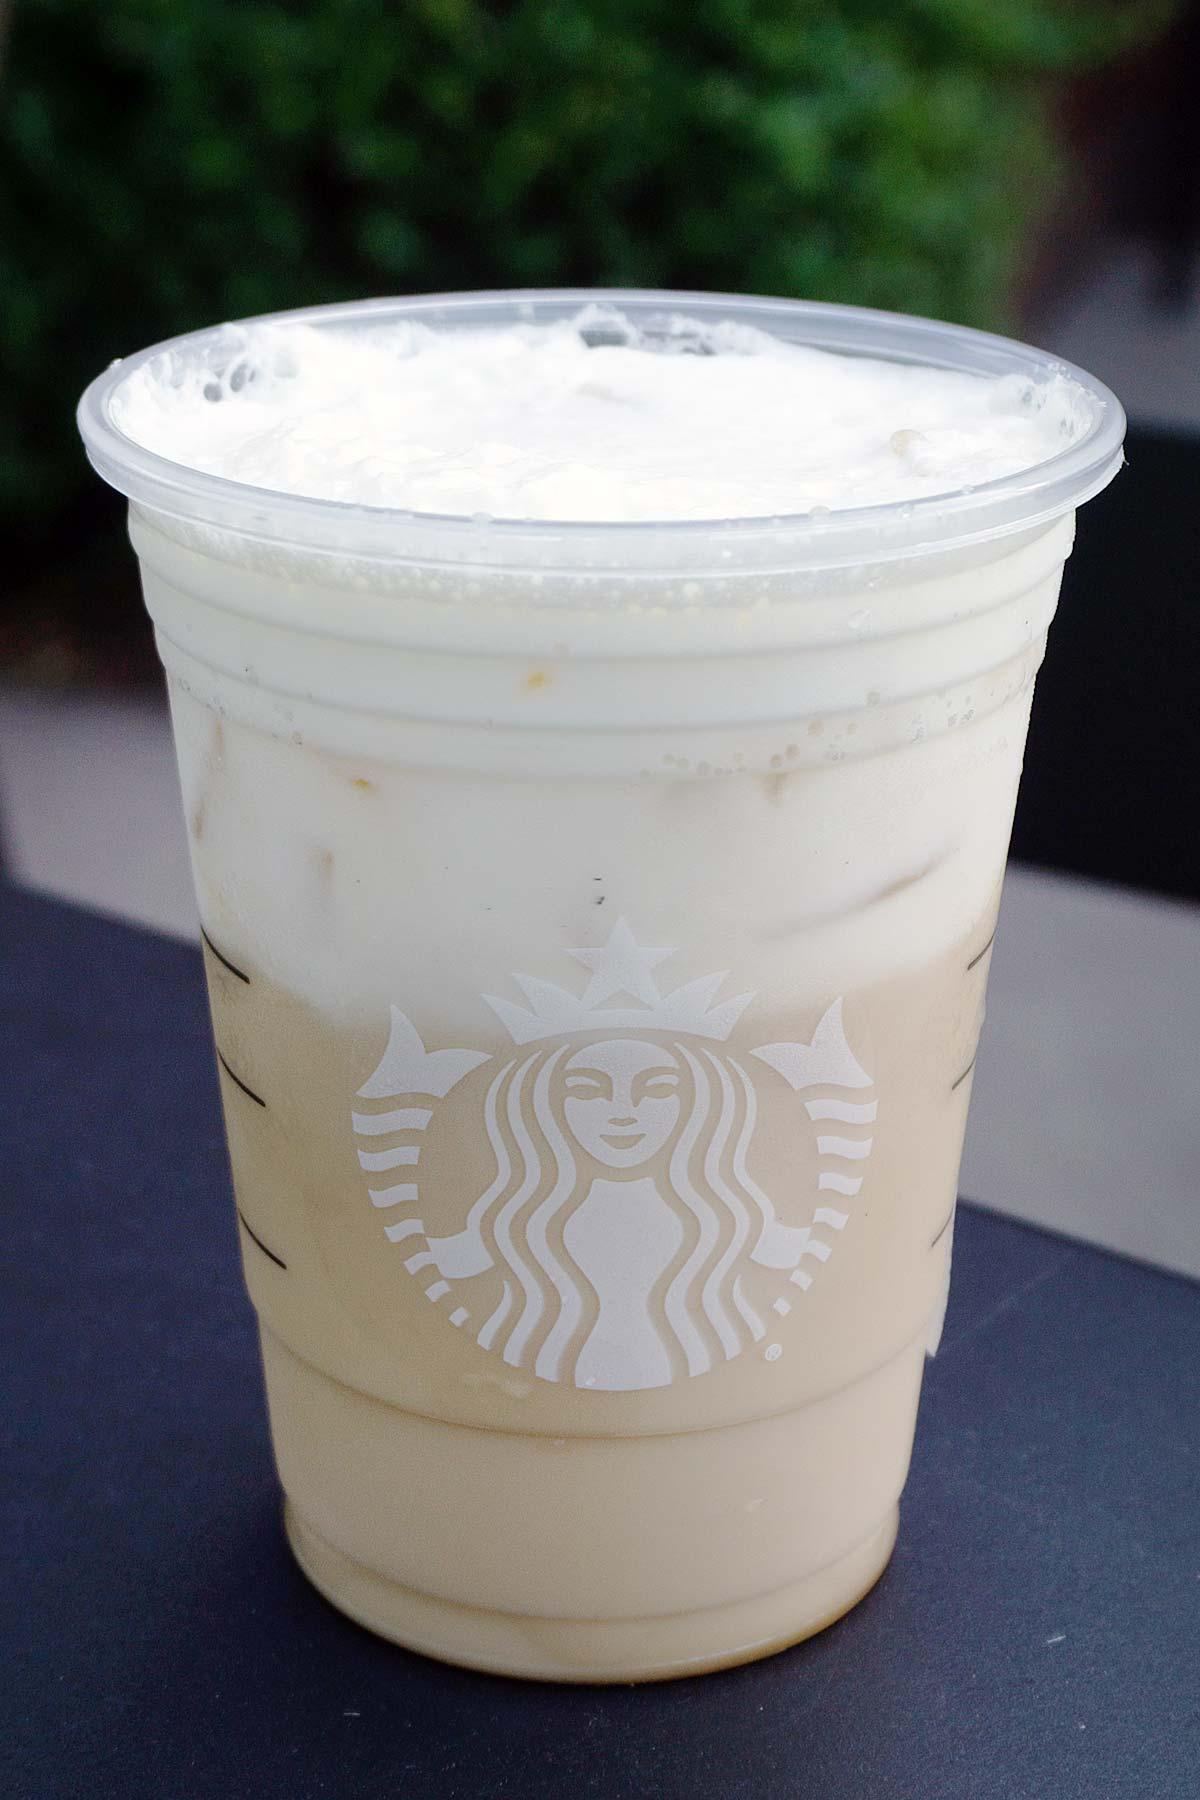 A TikTok Iced Chai Latte drink in a plastic Starbucks cup.